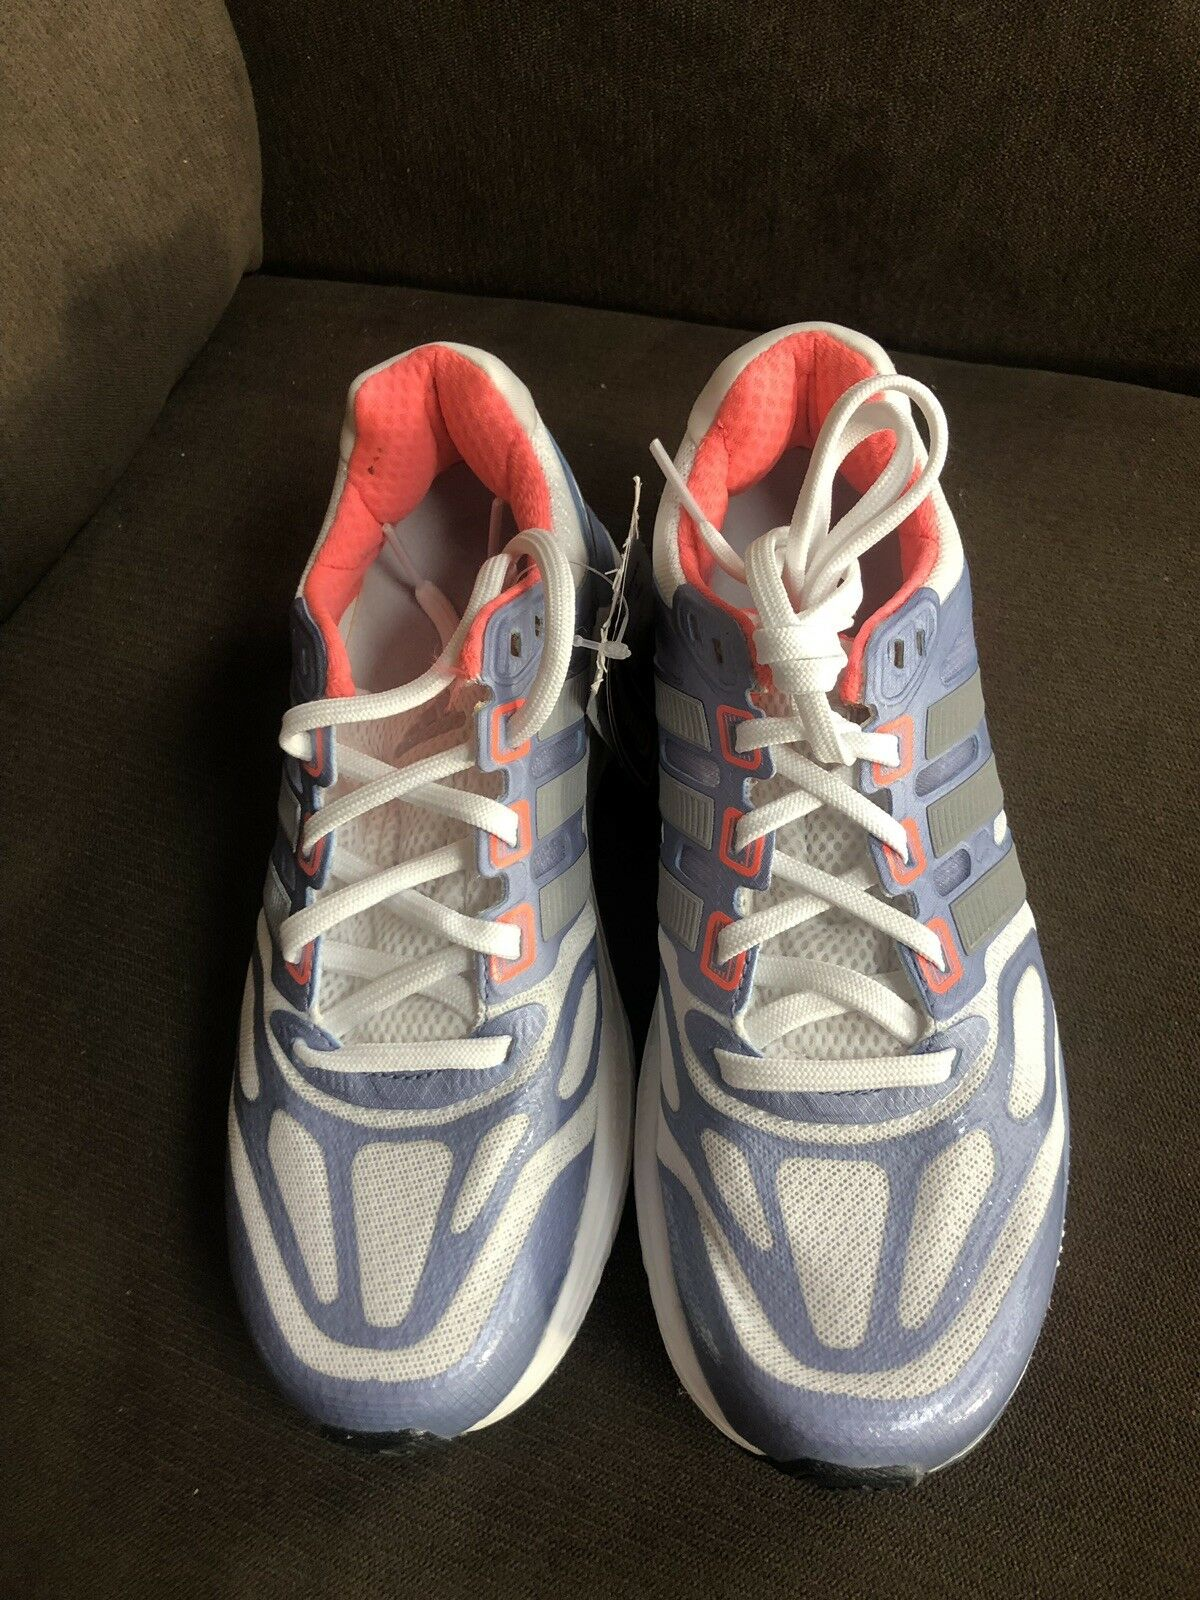 Adidas Women's Supernova Sequence 6 Athletic shoes G97482 Size 5.5